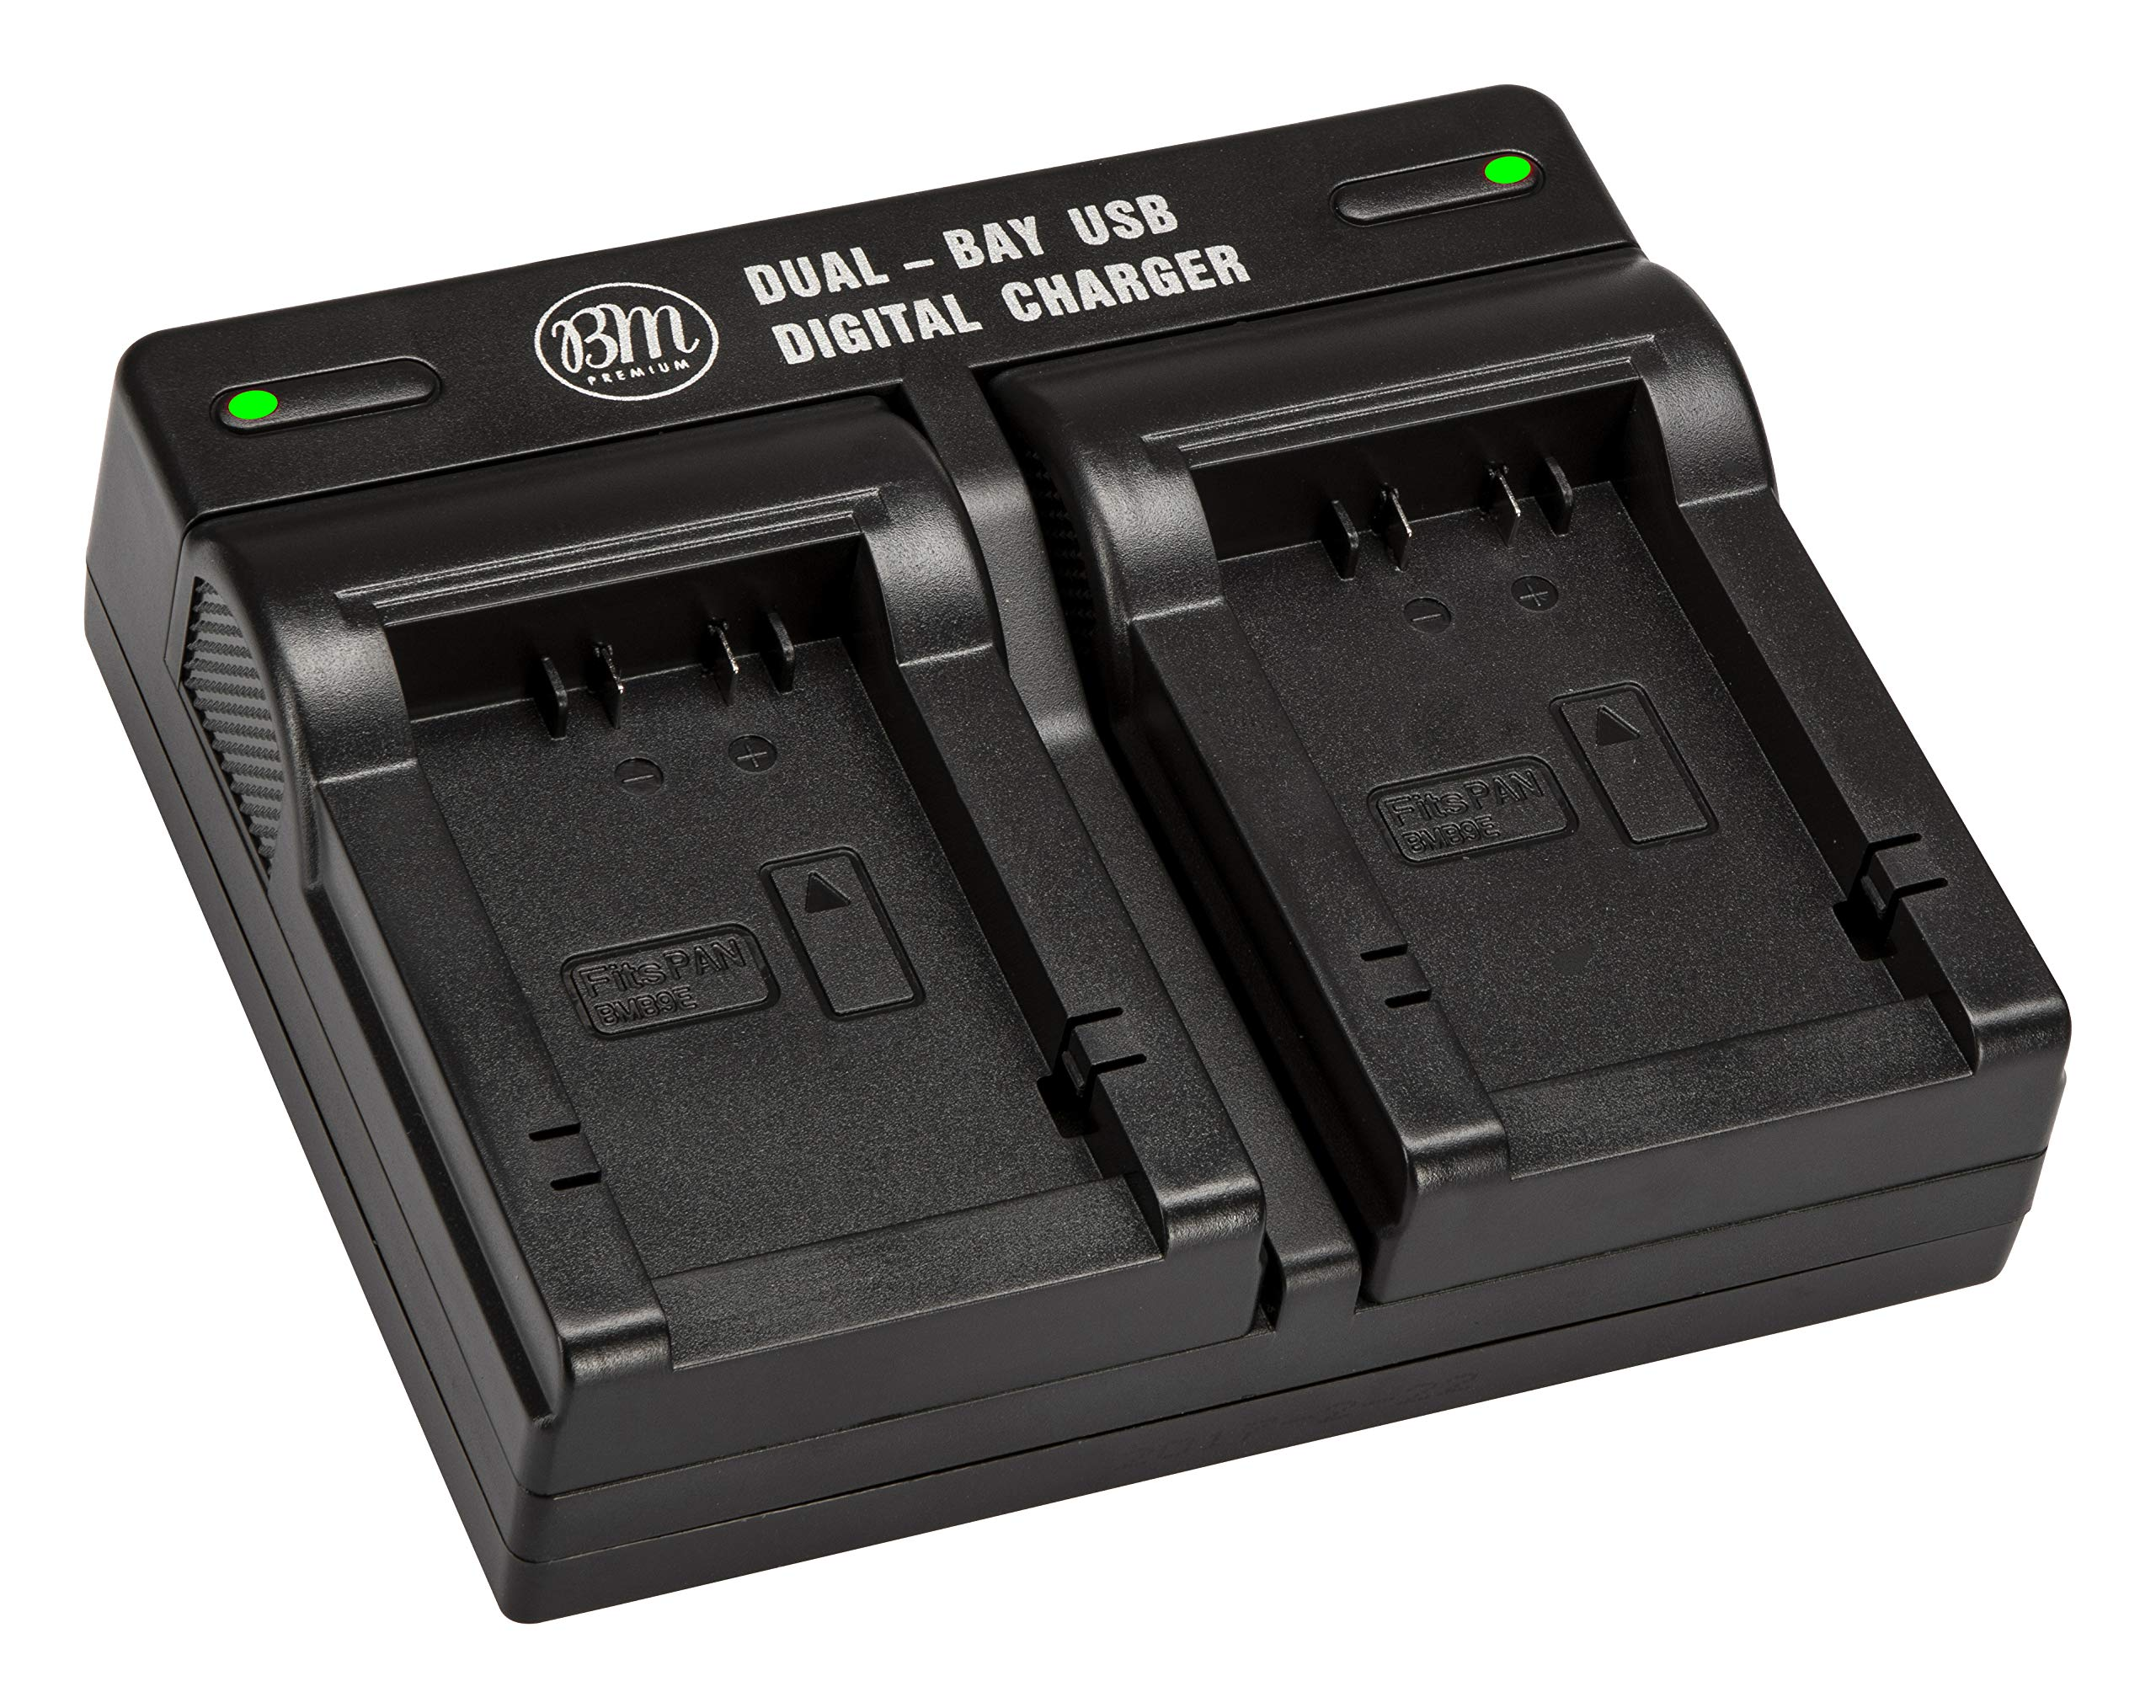 BM Premium DMW-BMB9 Dual Battery Charger for Panasonic Lumix DMC-FZ40K, DMC-FZ45K, DMC-FZ47K, DMC-FZ48K, DMC-FZ60, DMC-FZ70, DMC -FZ100, DMC-FZ150 Digital Camera